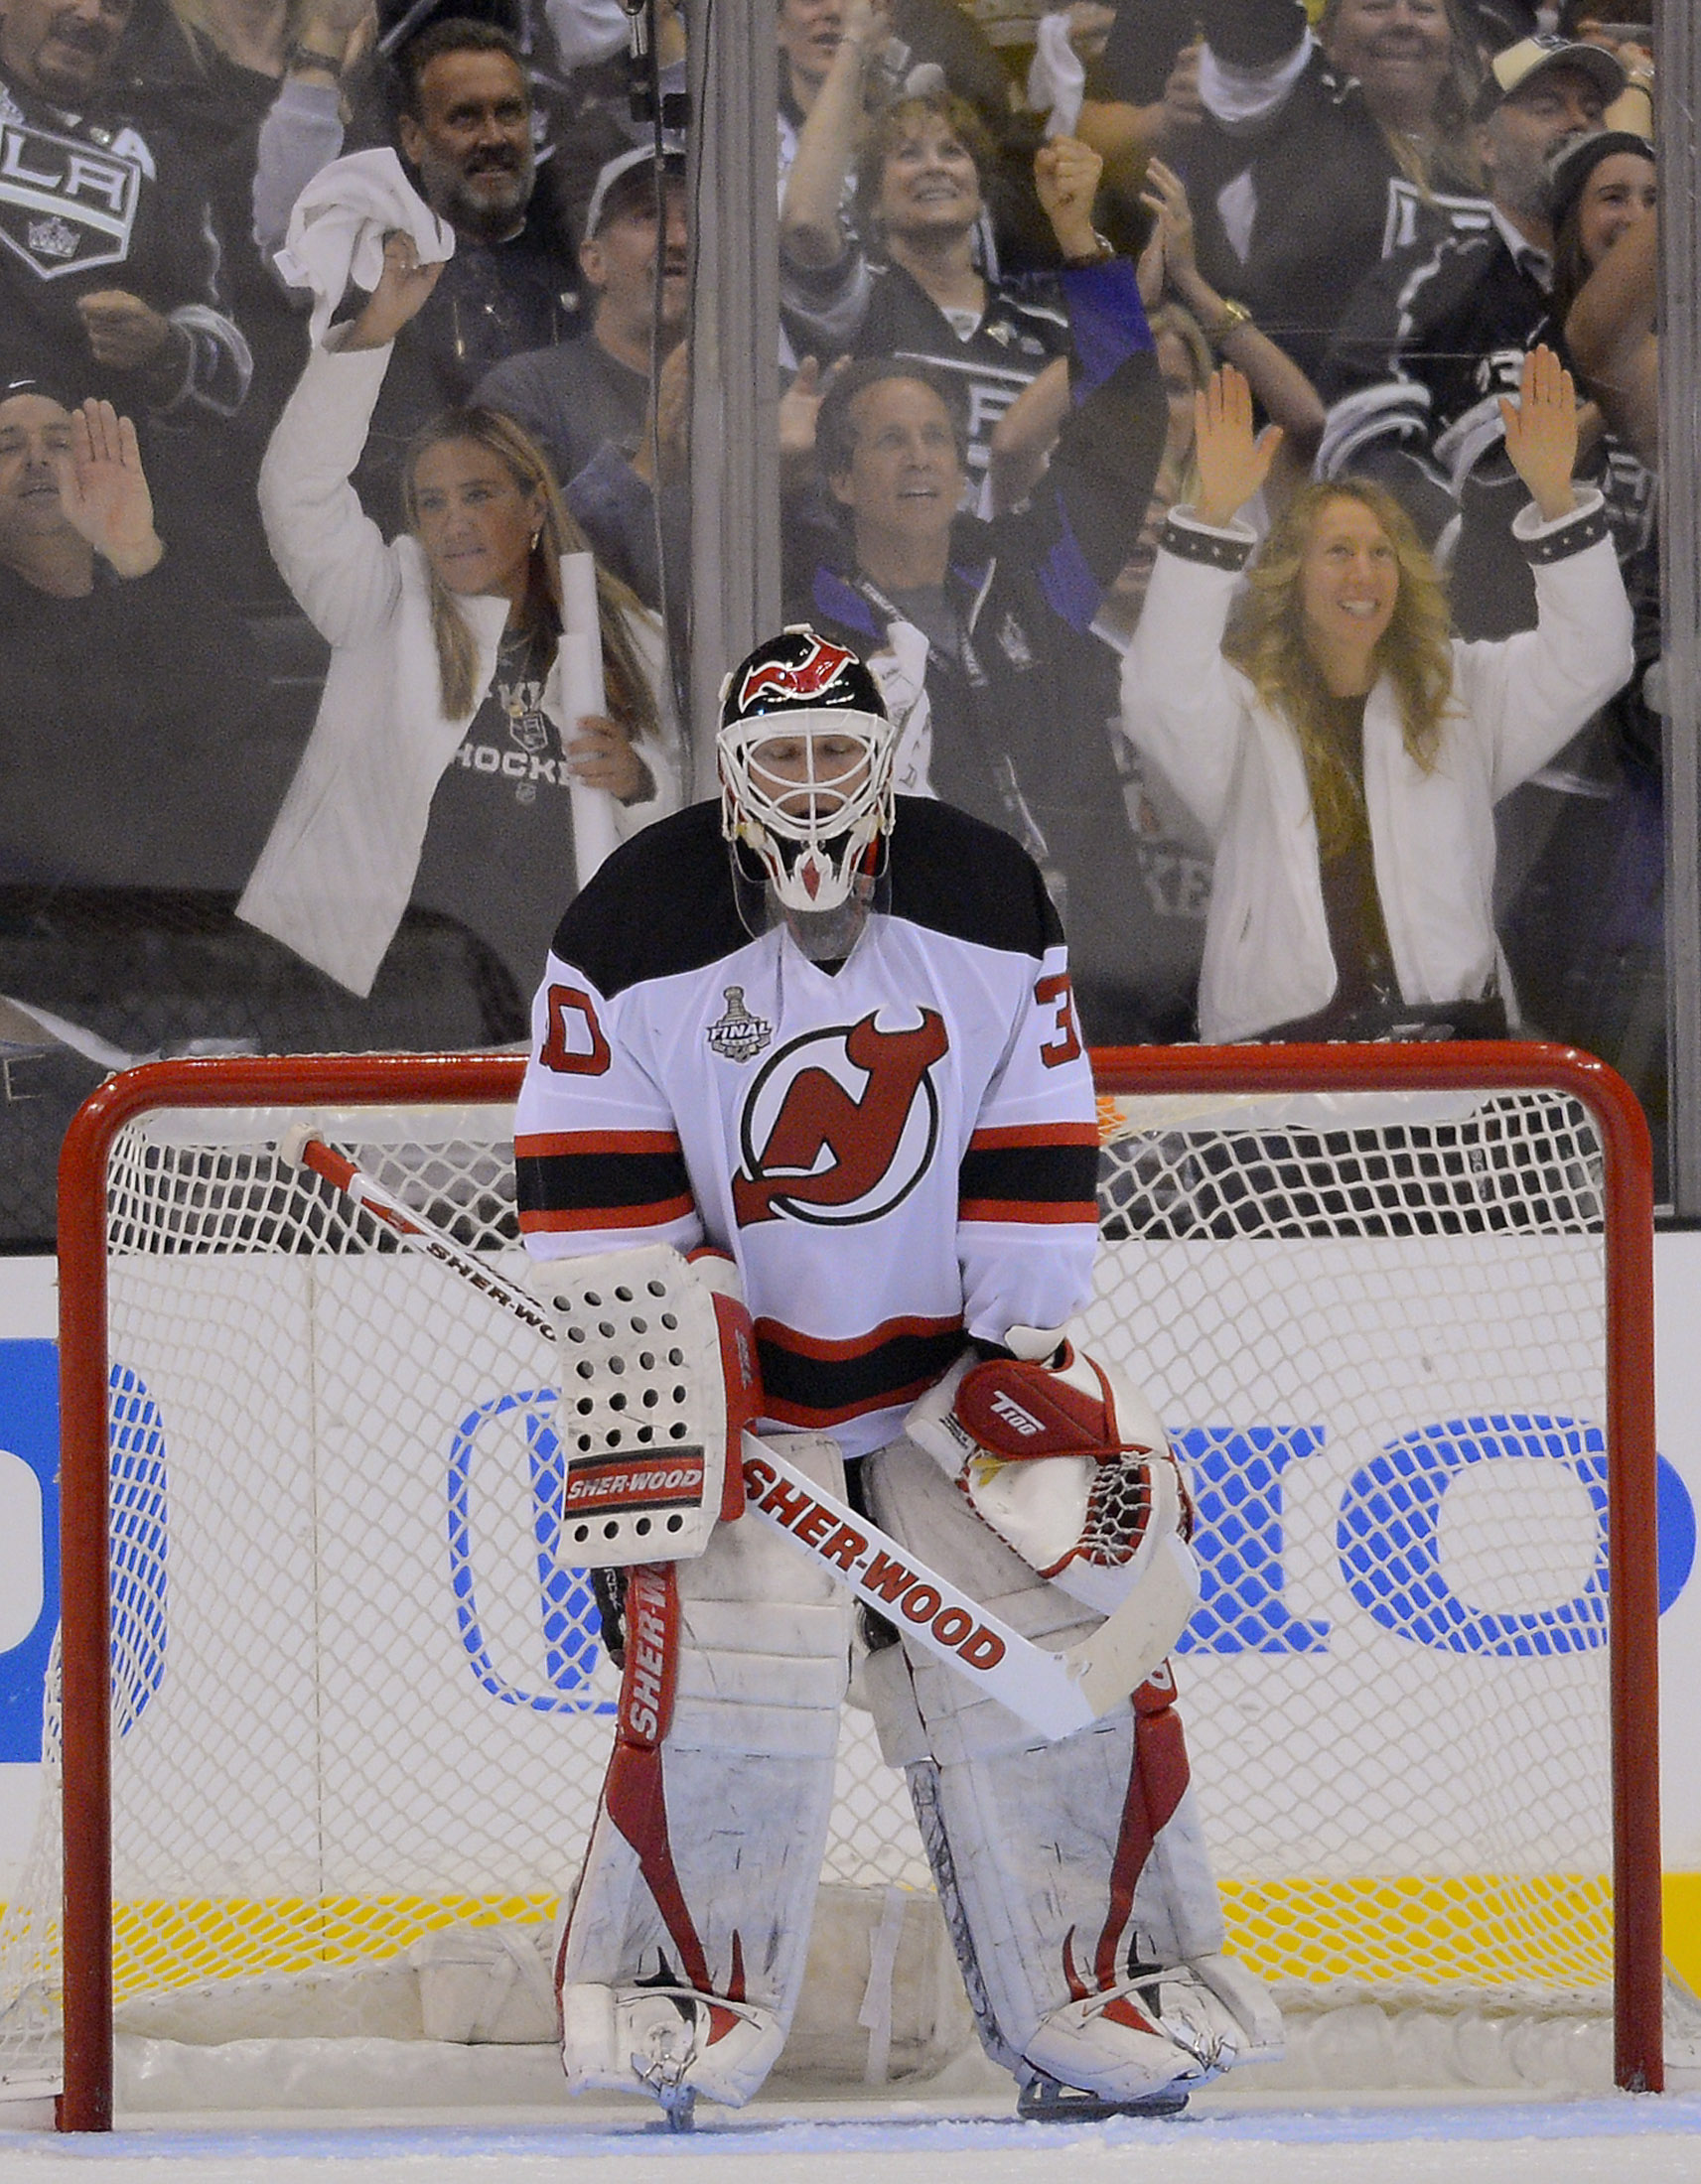 Martin Brodeur has done his part in the final, but it's tough to win when your team can't score. (AP)